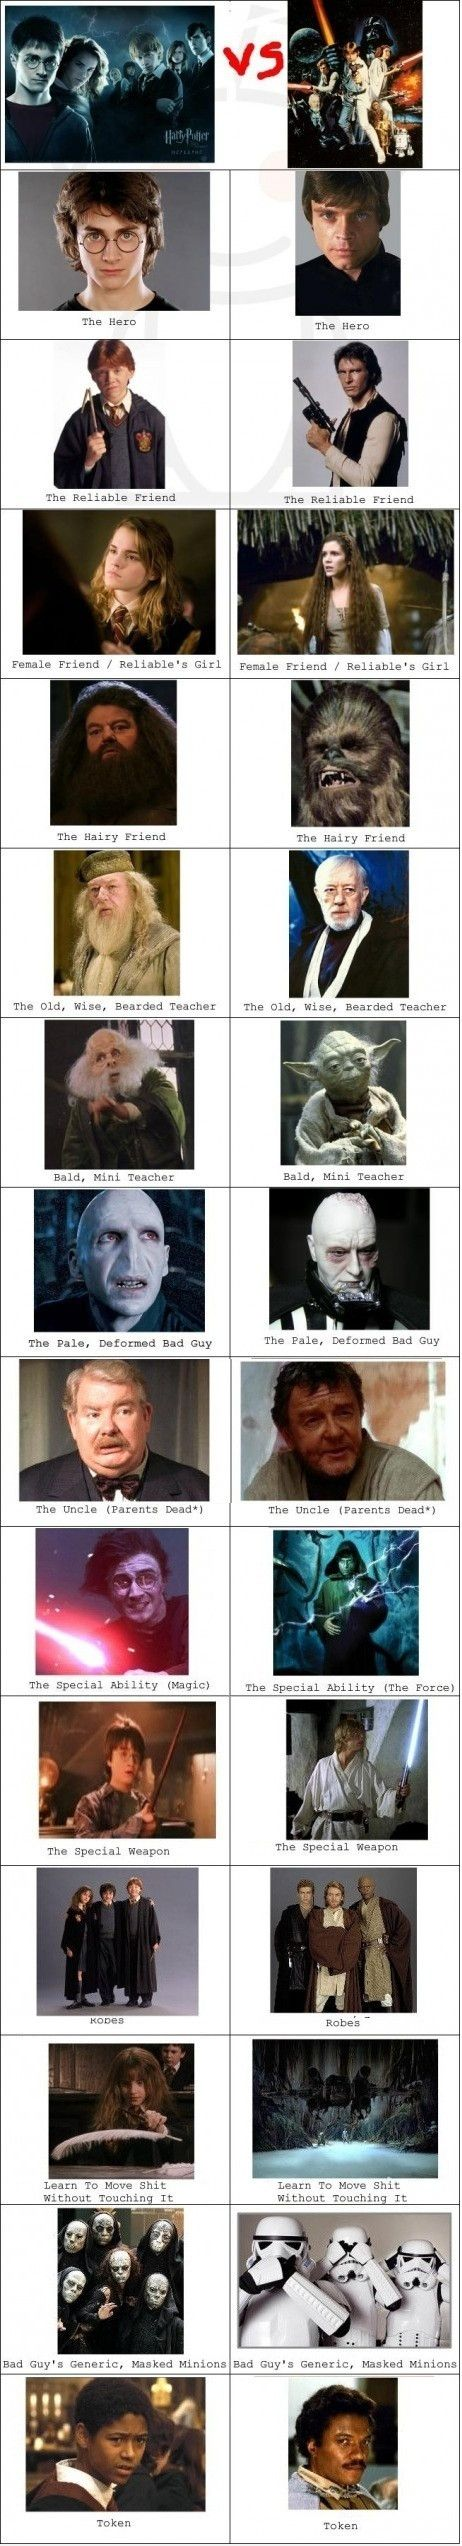 Anything Harry Potter can do, Star Wars can do better... and... firstier. Yes, that is too a word.